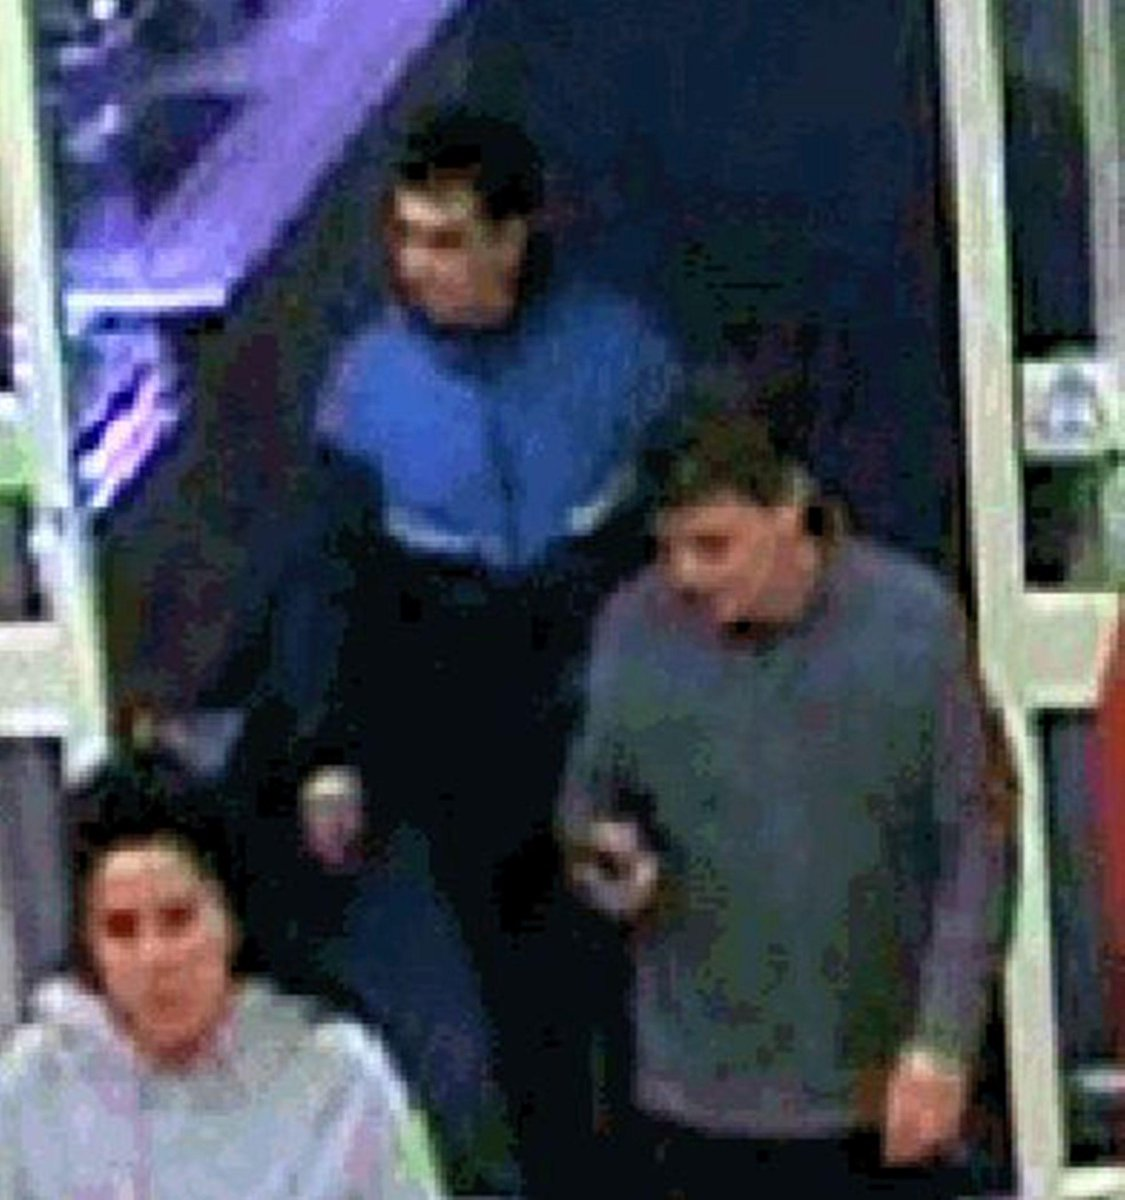 Utter scum @brightonargus Trio hunted after 88-year-old with Alzheimer's has cash card stolen: http://t.co/drjZUBTuPt http://t.co/7b50HJ9aAn